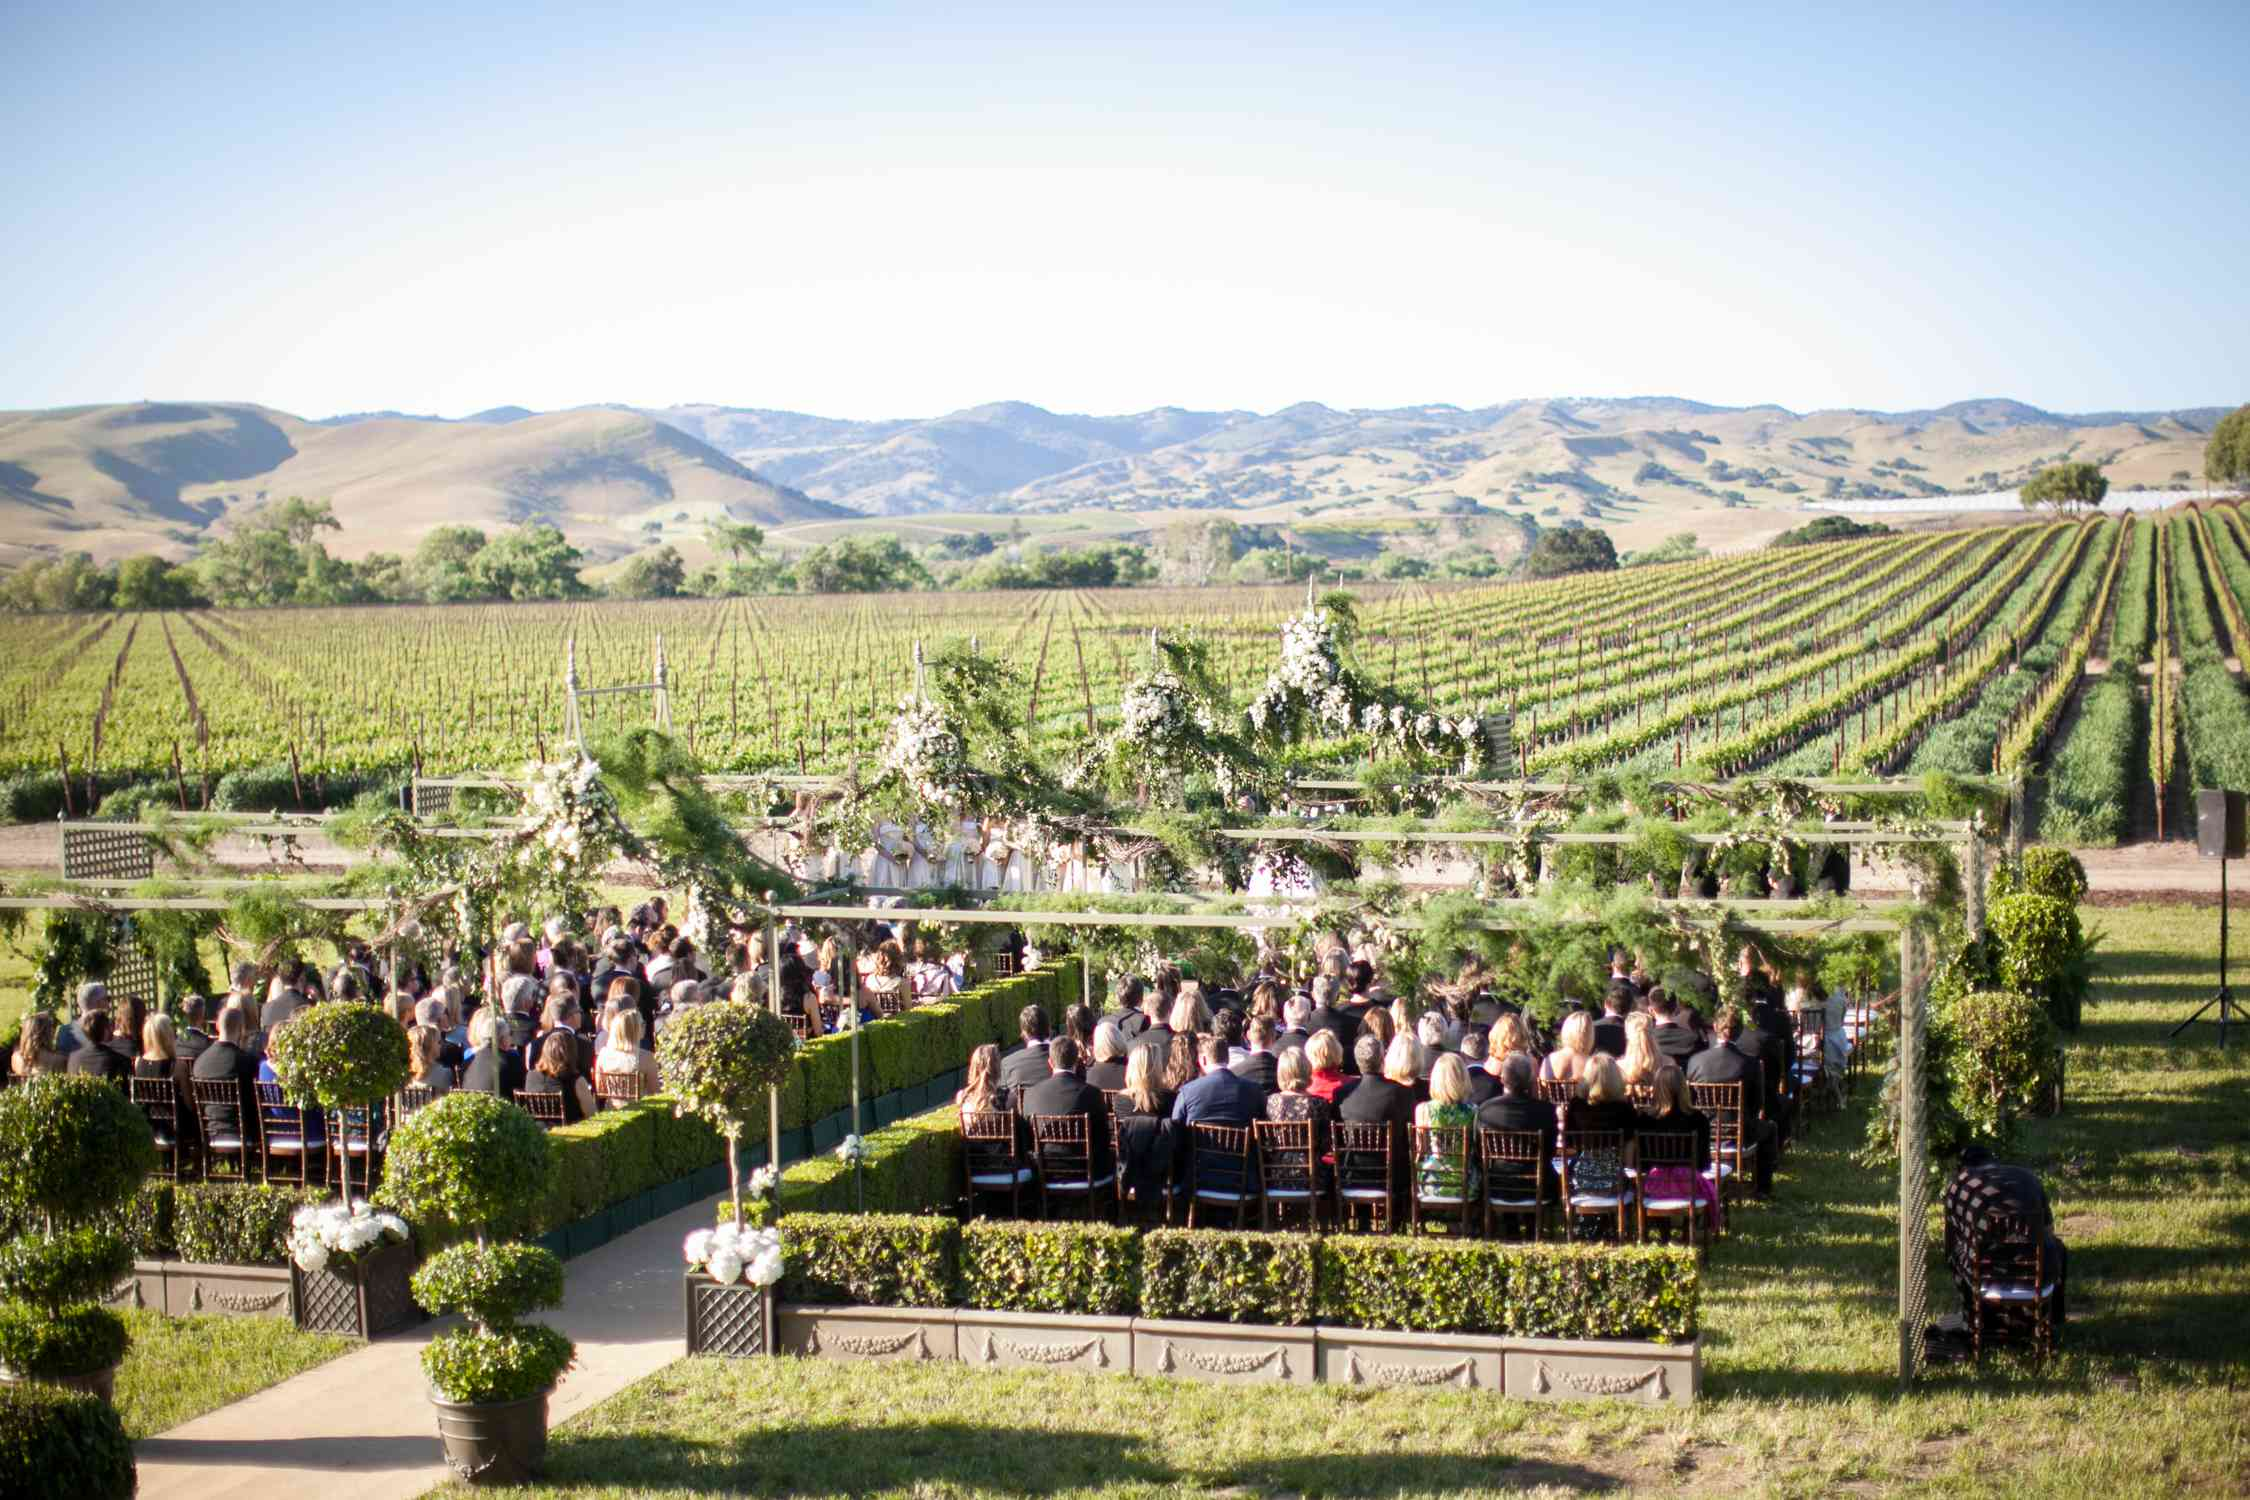 Wedding ceremony with vineyard in the background